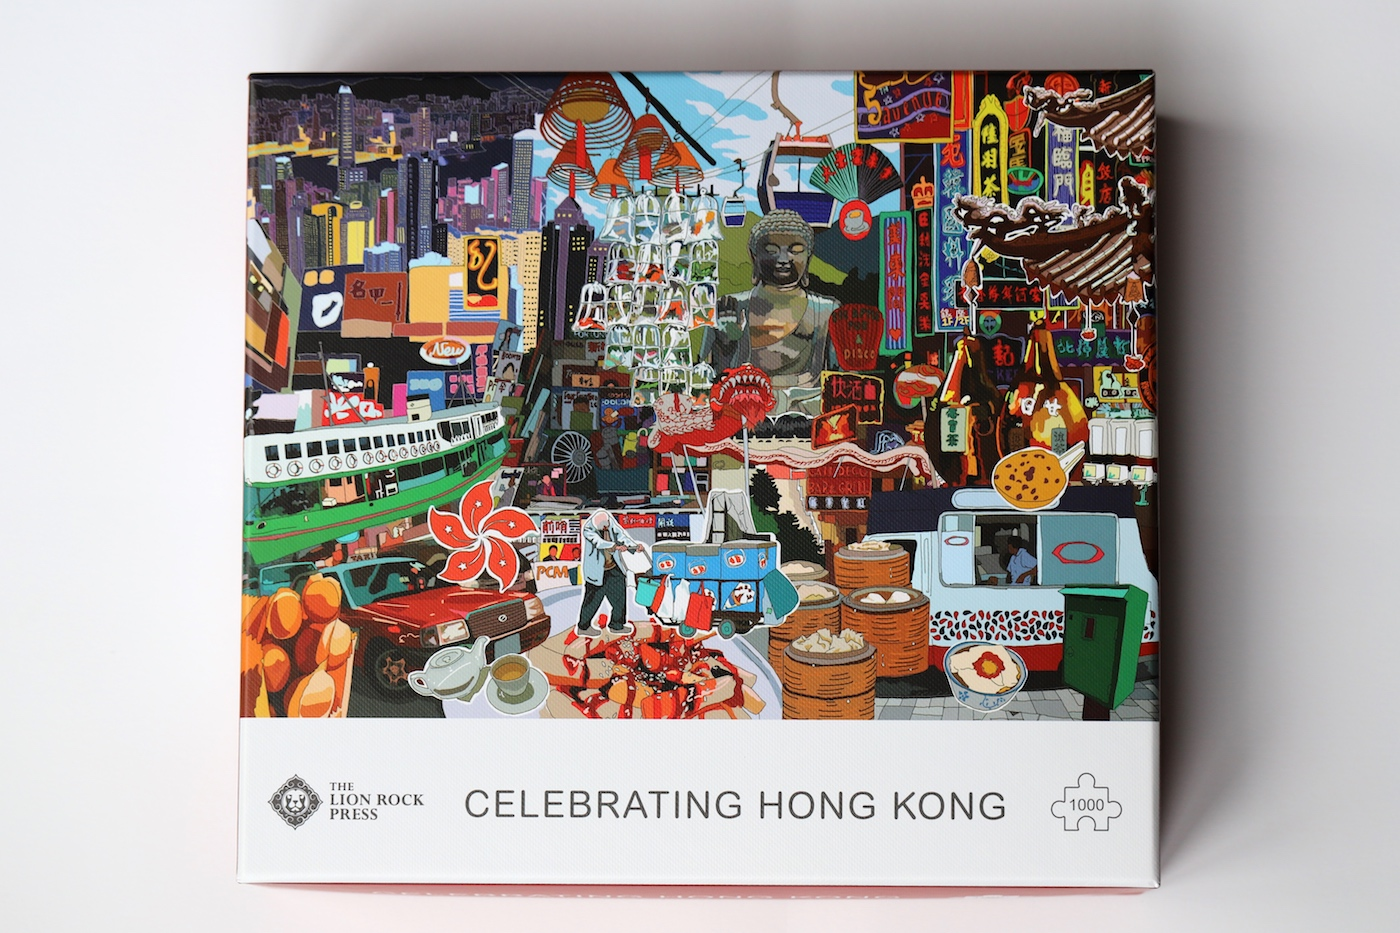 Hong KOng themed gifts Lion Rock Press jigsaw